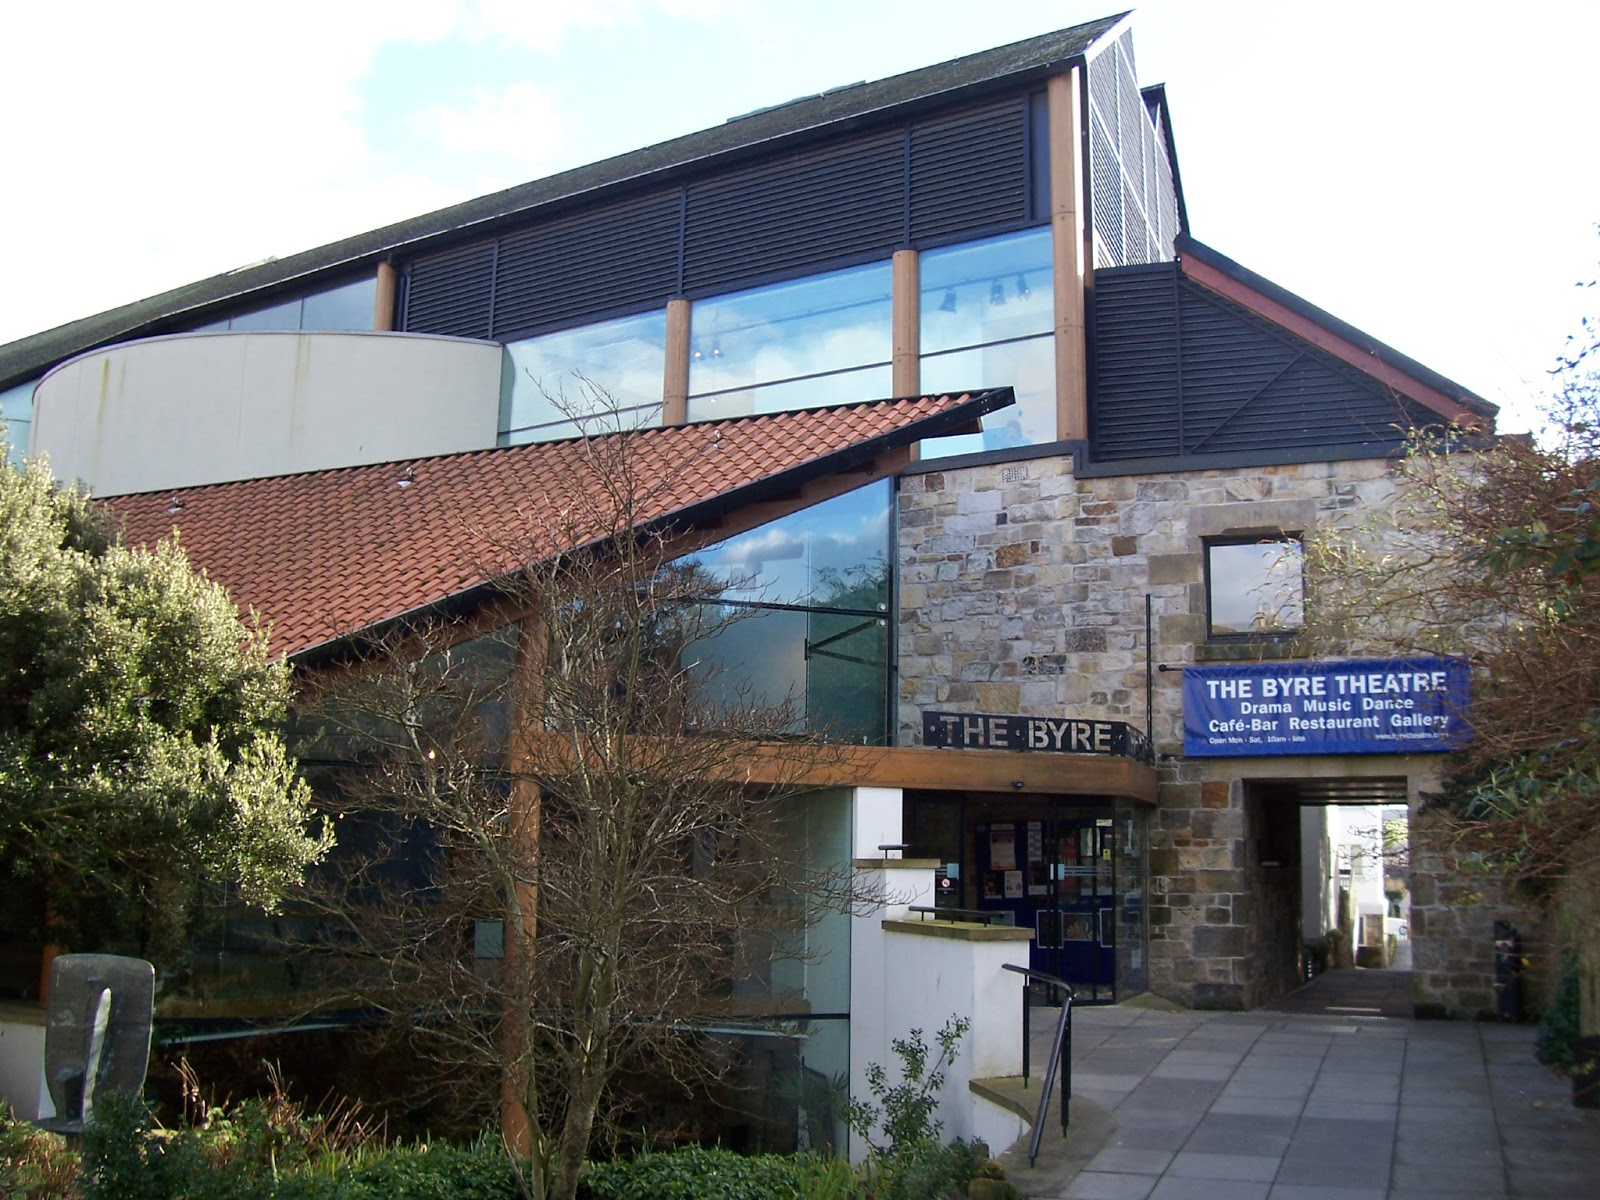 maidment theatre closure in a relationship